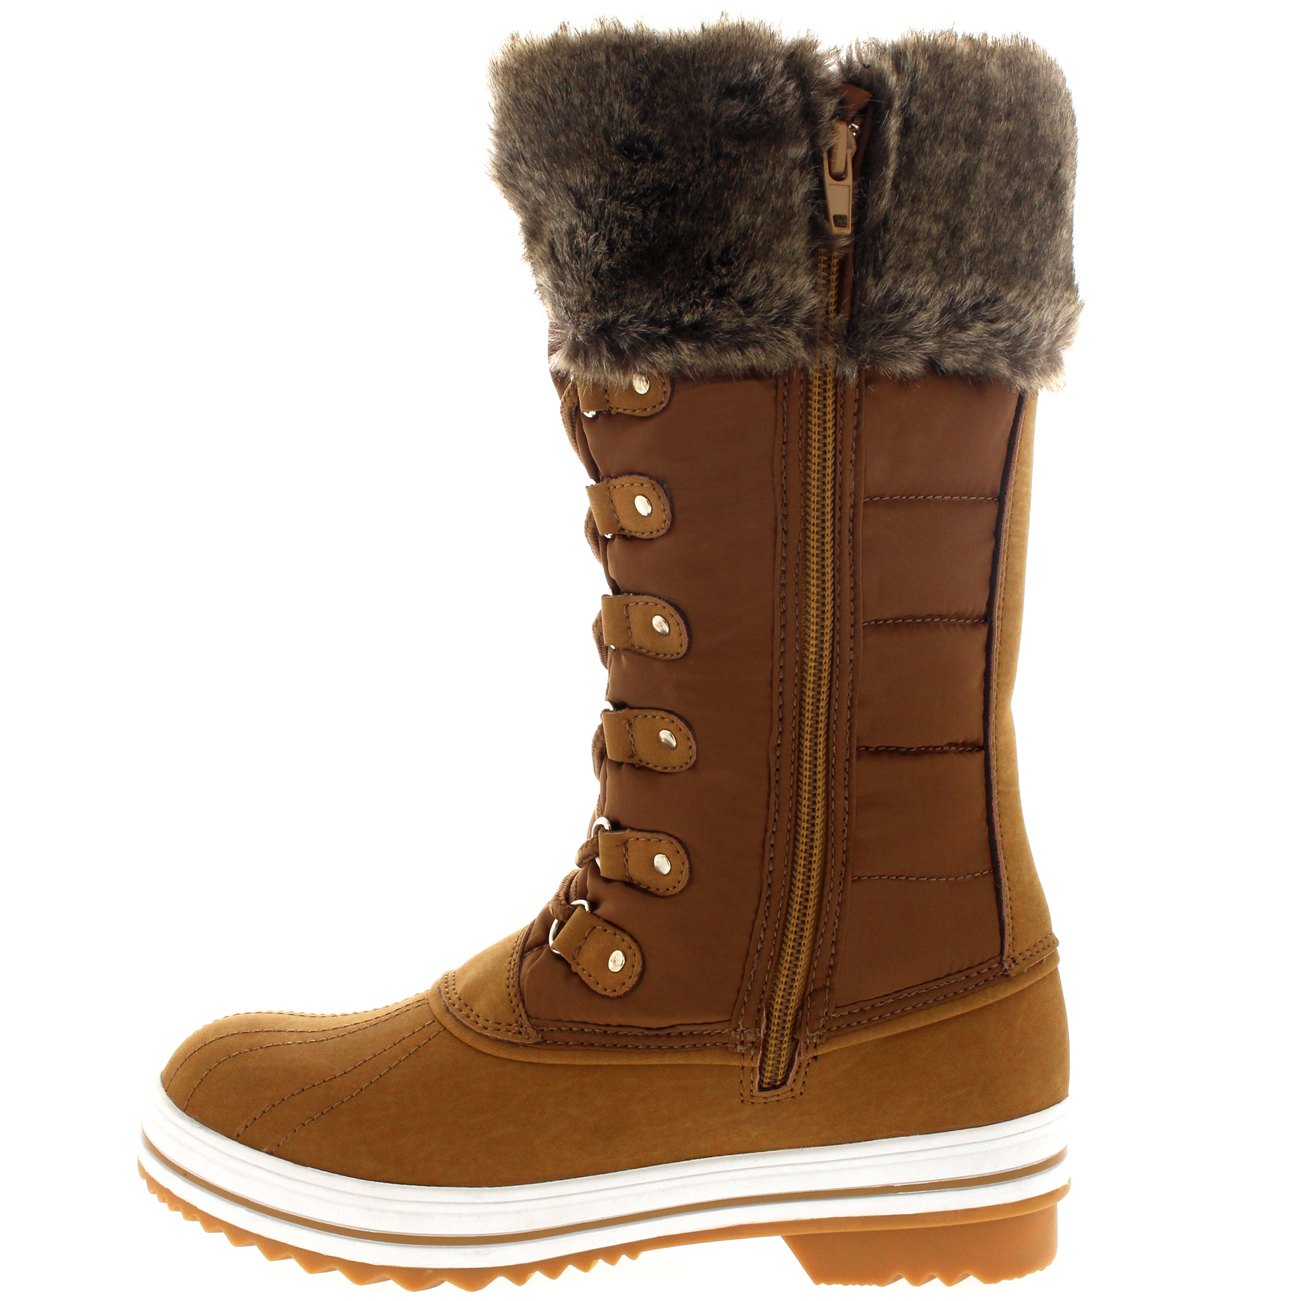 Size 12 Womens Winter Snow Boots | Homewood Mountain Ski Resort